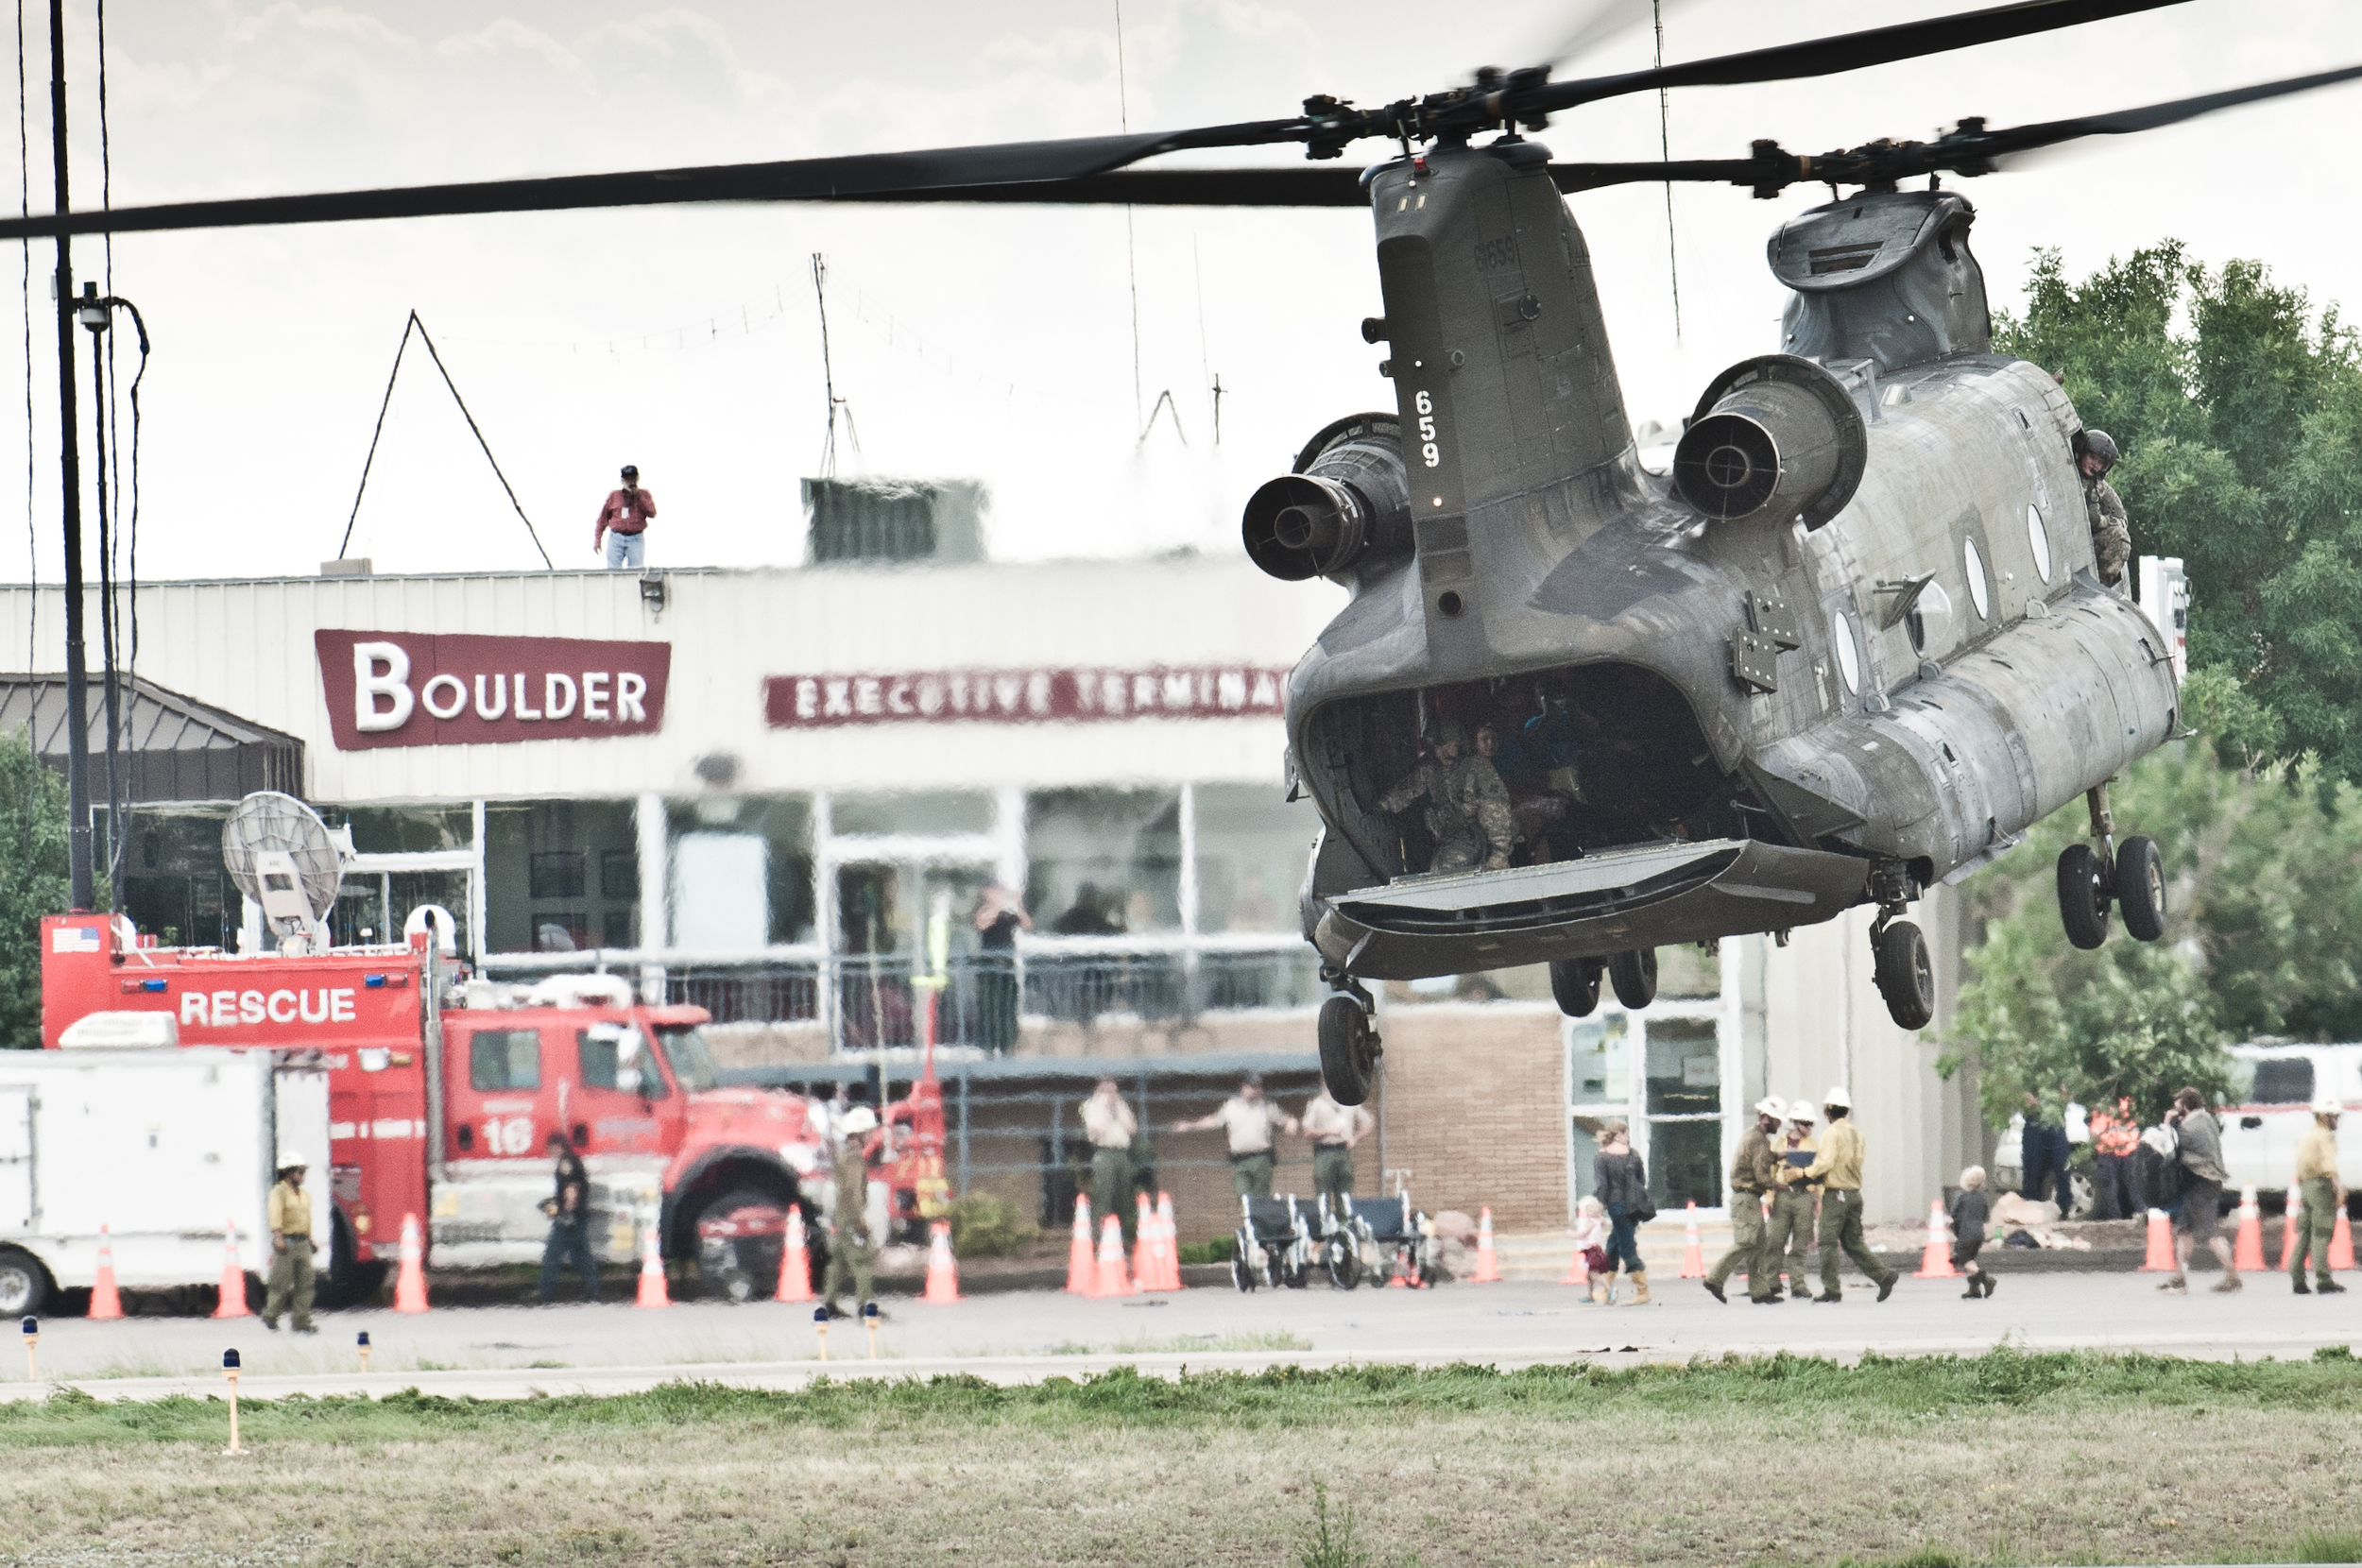 The Chinooks came to the rescue of thousands. Was very moving watching people empty out of the back of the choppers with a pet and a bag - knowing they would not see their homes for a long time...if ever.